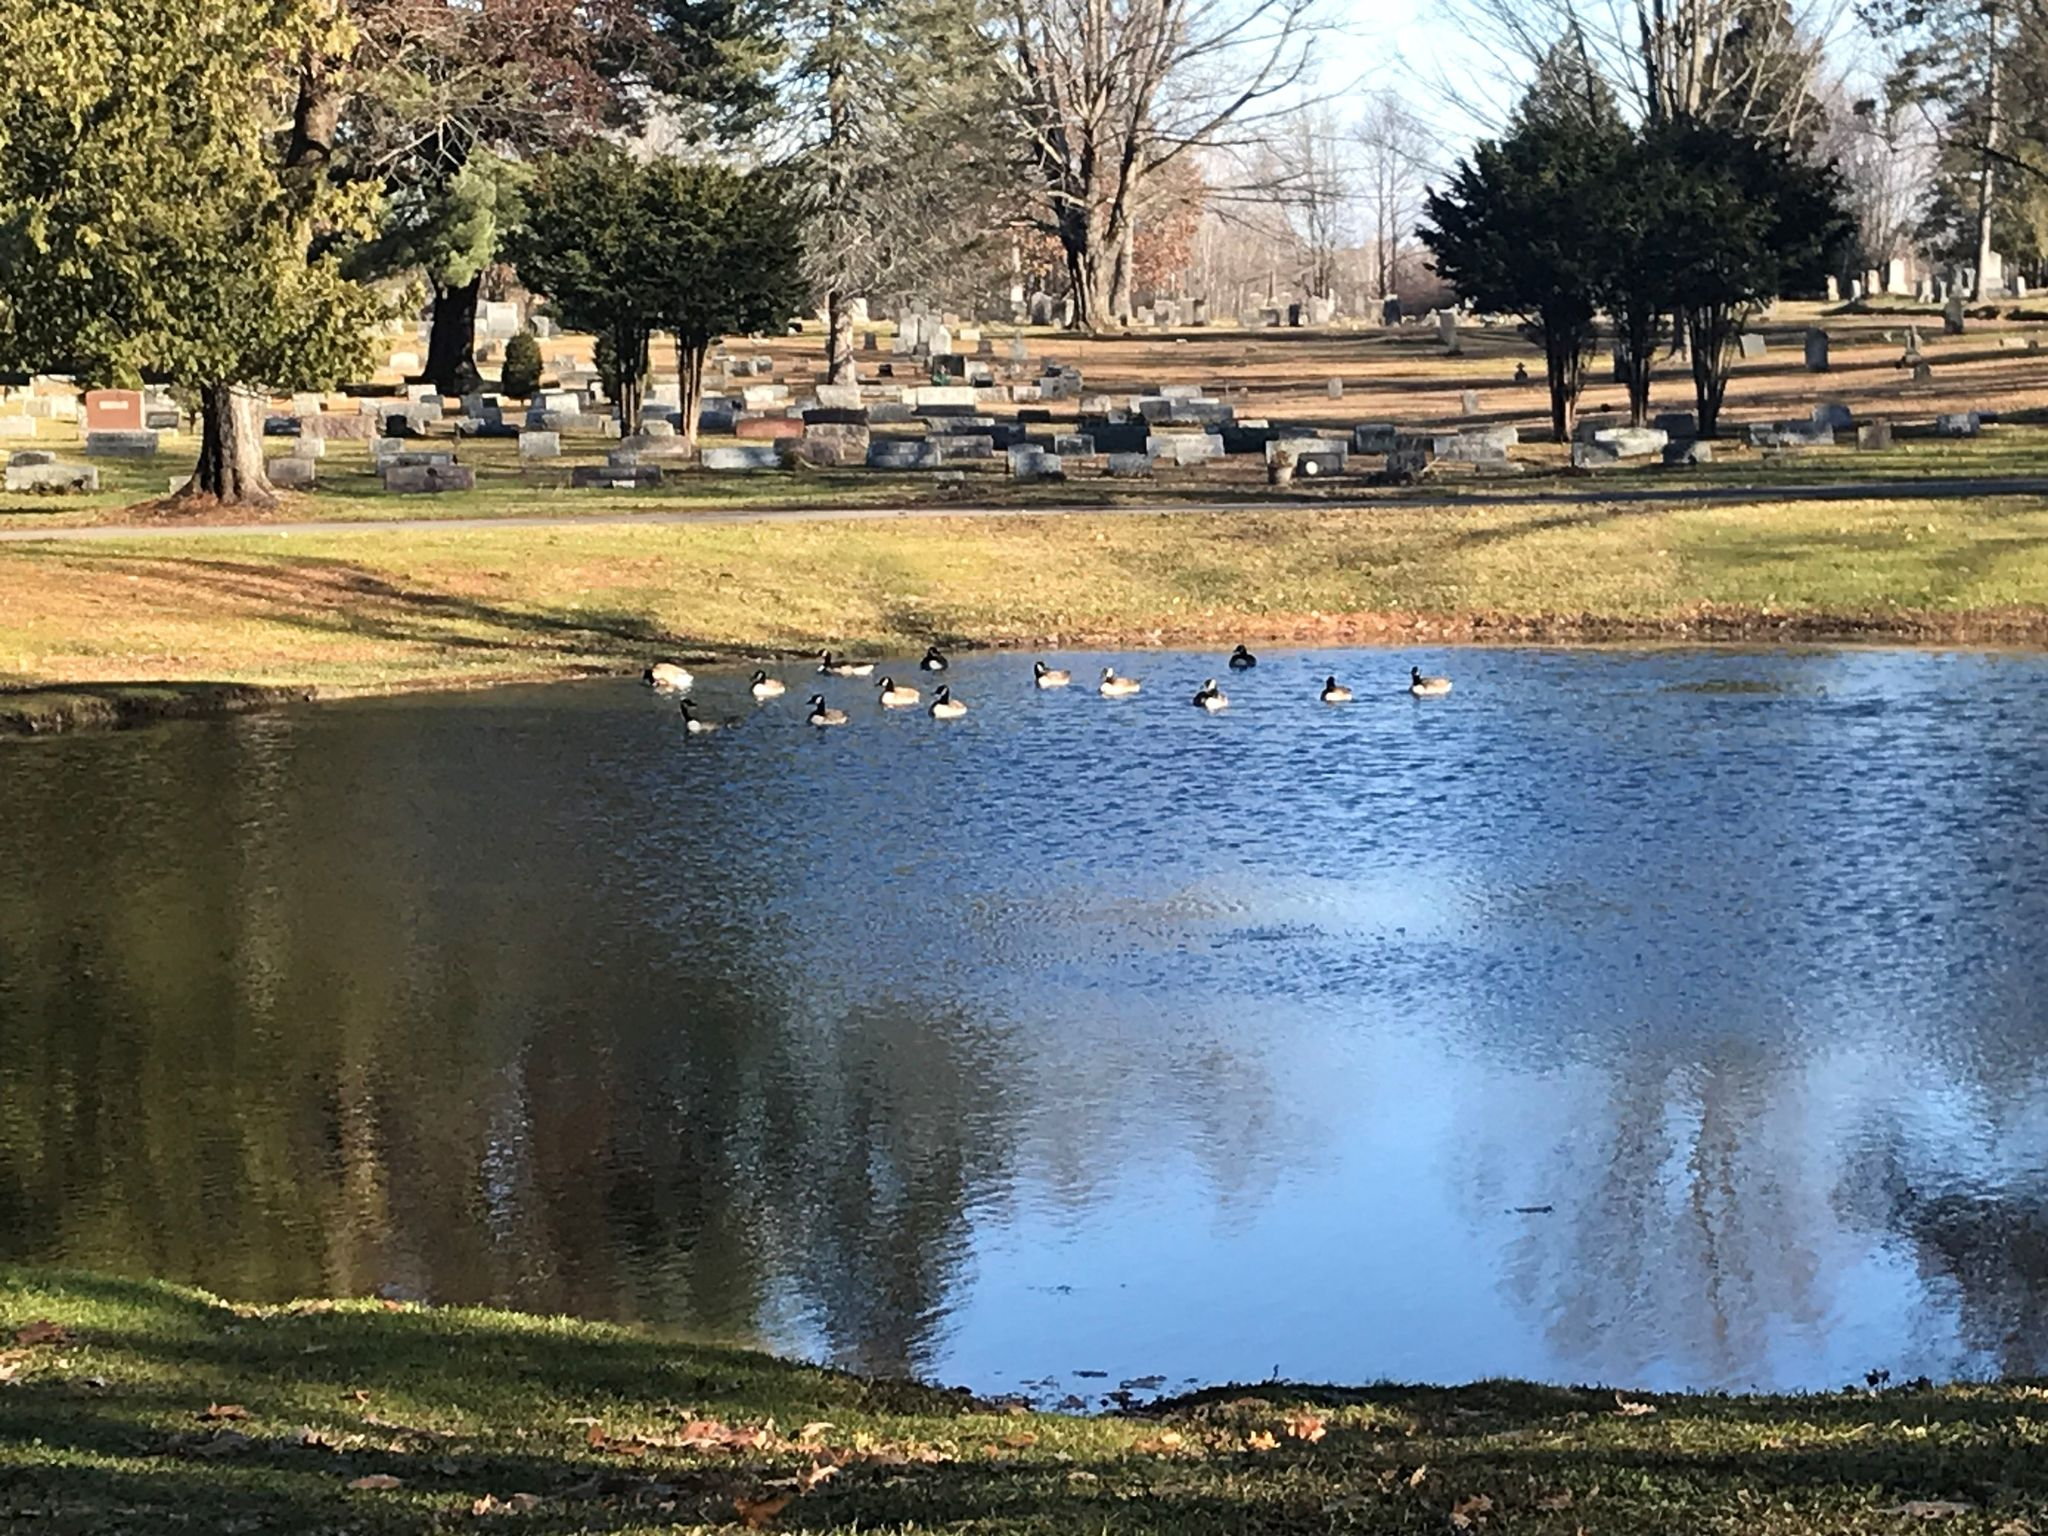 Ducks enjoying the pond